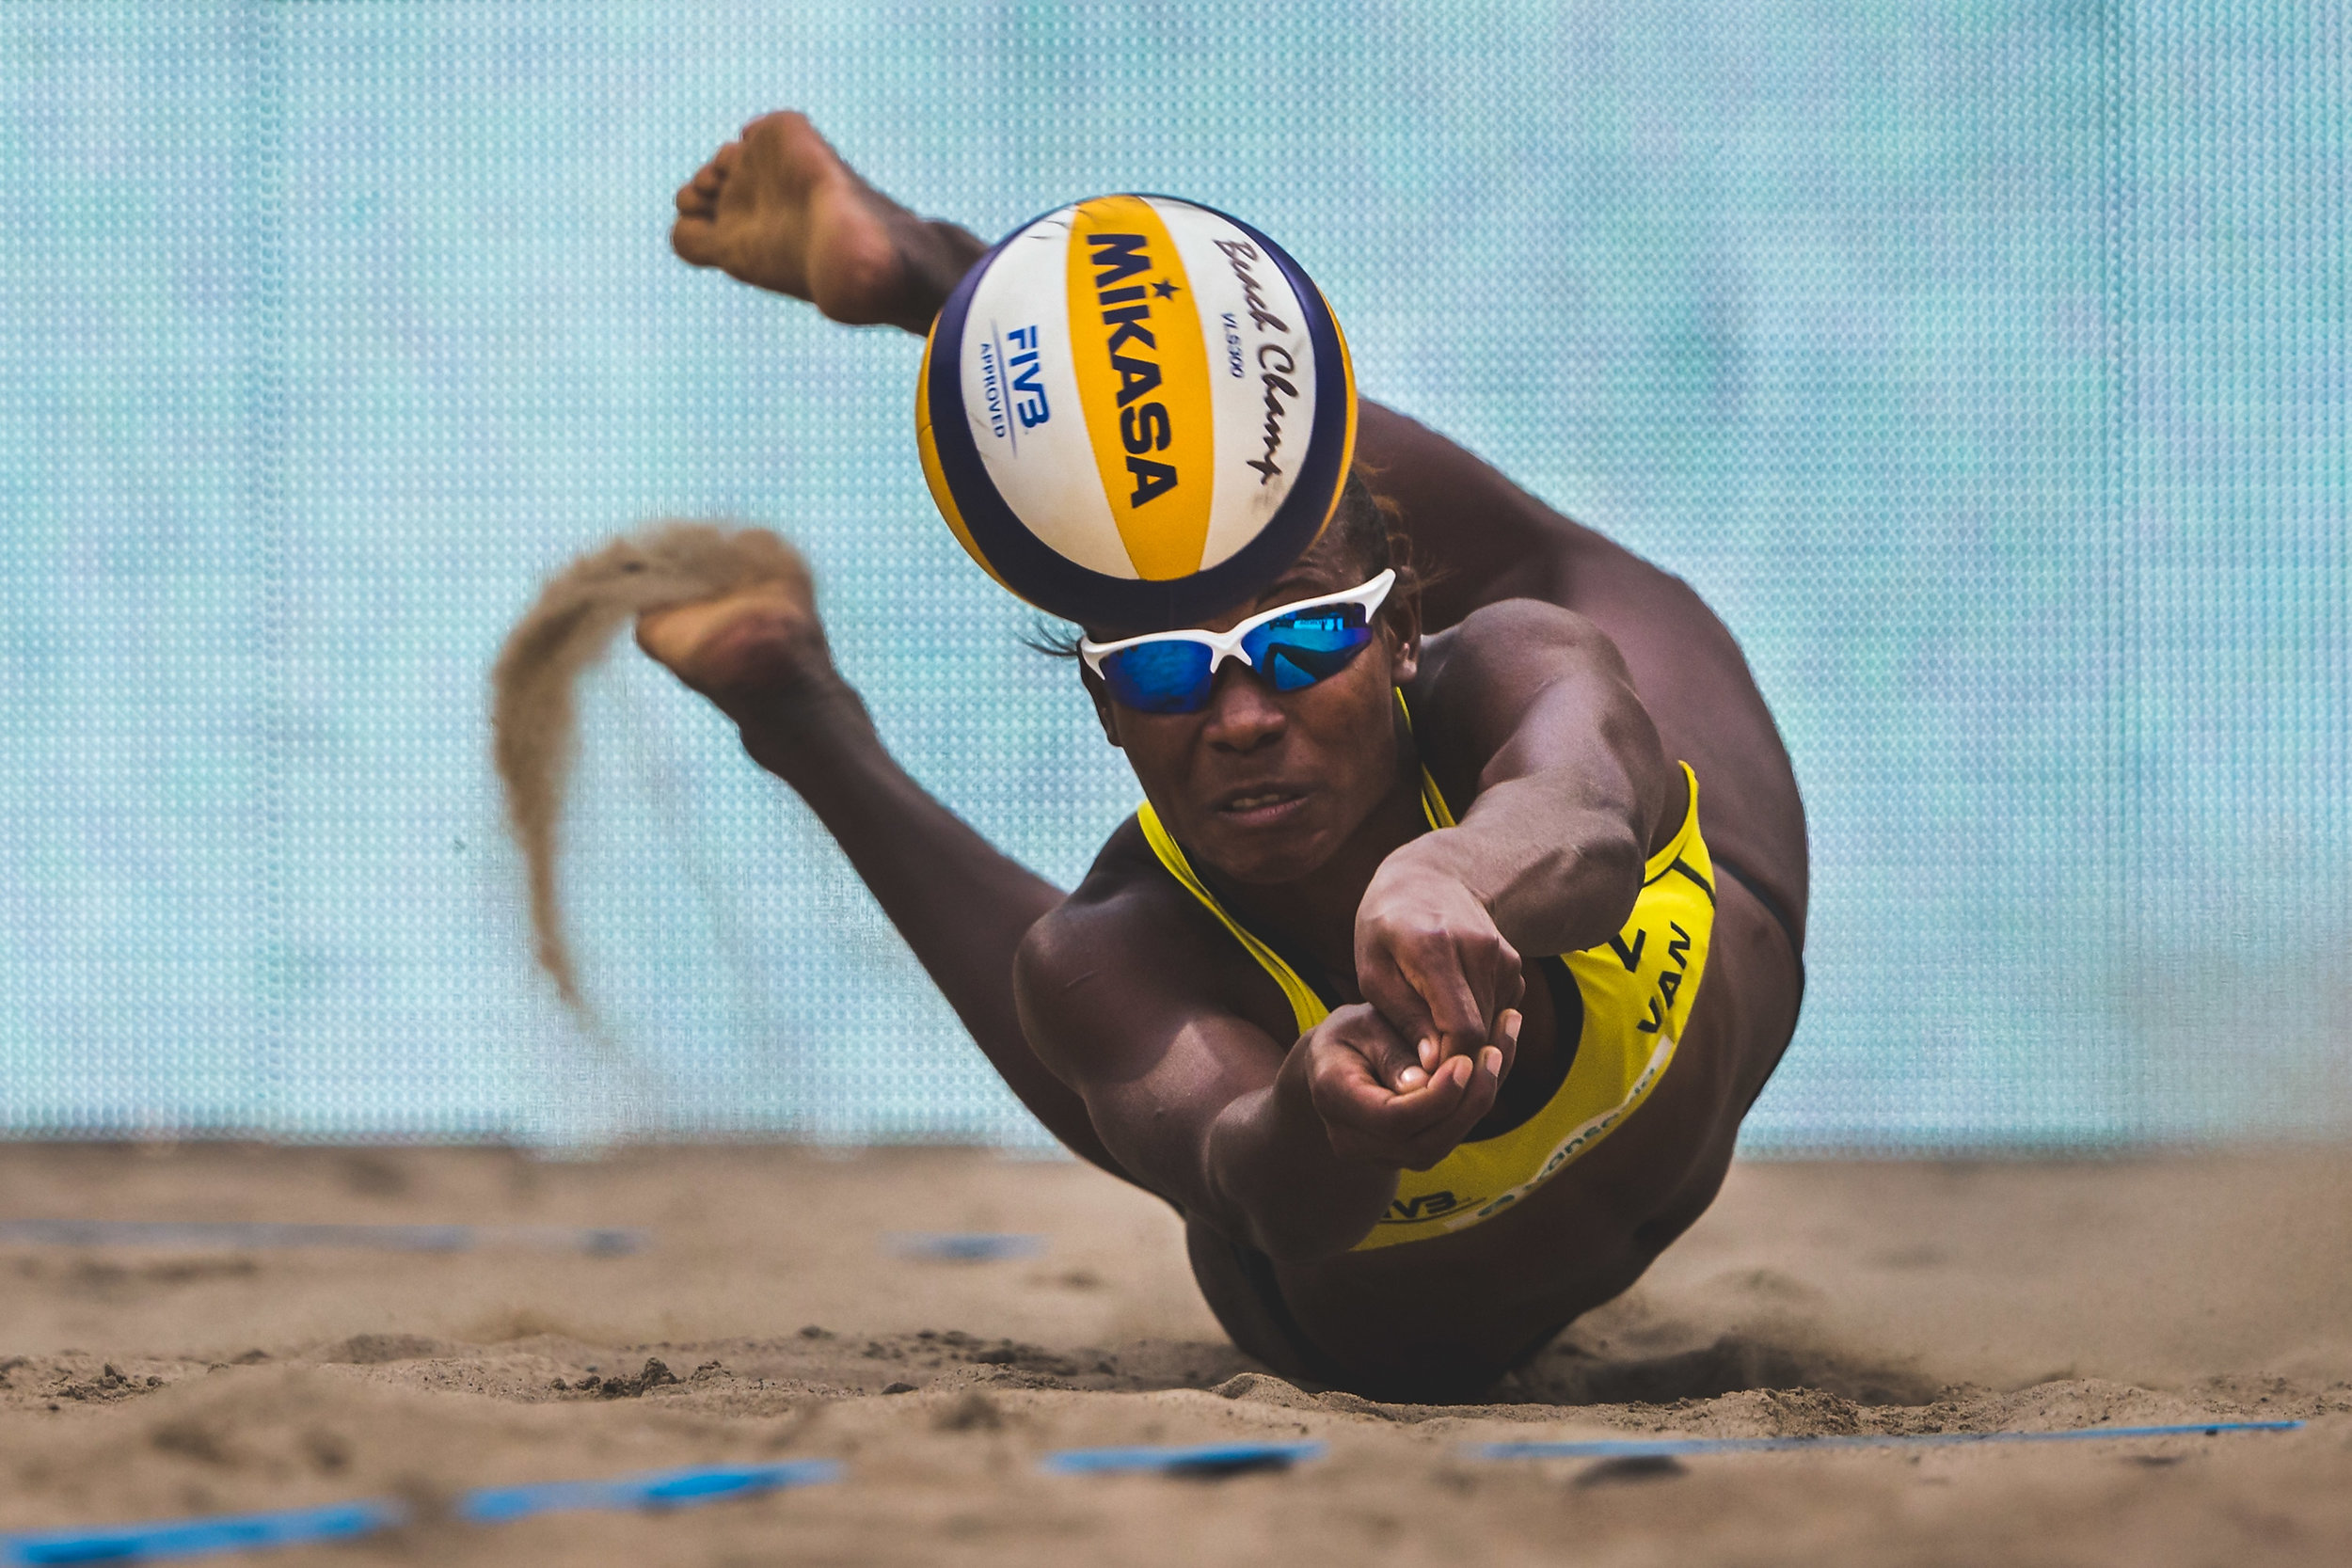 Linline Matauatu  of  Vanuato   dive s during the  FIVB Beach Volleyball World Championships  female match between Brazil and Vanuato on June 28, 2015 in Amsterdam, Netherlands.